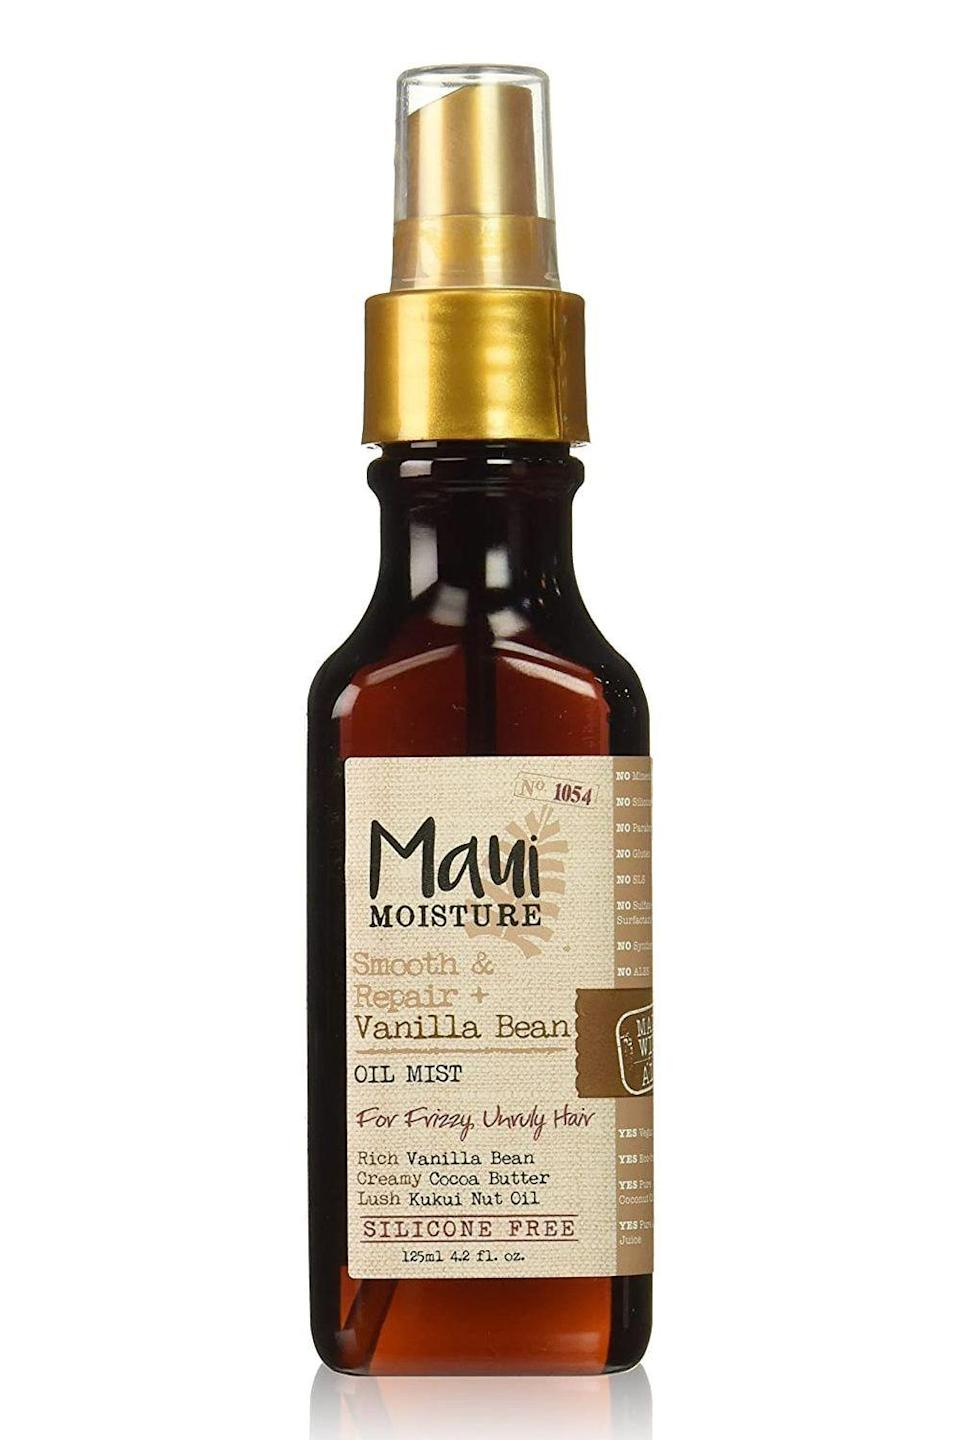 "<p><strong>Maui Moisture</strong></p><p>amazon.com</p><p><strong>$8.86</strong></p><p><a href=""https://www.amazon.com/dp/B06W9PBXW4?tag=syn-yahoo-20&ascsubtag=%5Bartid%7C10049.g.34357706%5Bsrc%7Cyahoo-us"" rel=""nofollow noopener"" target=""_blank"" data-ylk=""slk:Shop Now"" class=""link rapid-noclick-resp"">Shop Now</a></p><p>Your depleted bank account will love this budget-friendly drugstore option almost as much as your depleted strands will. This <strong>oil mist softens, smooths, and smells <em>ah</em>-mazing</strong>, all thanks to the emollient kukui nut oil, vanilla bean, aloe vera, and coconut oil. Oh, and it fights flyaways caused by humidity, too.</p>"